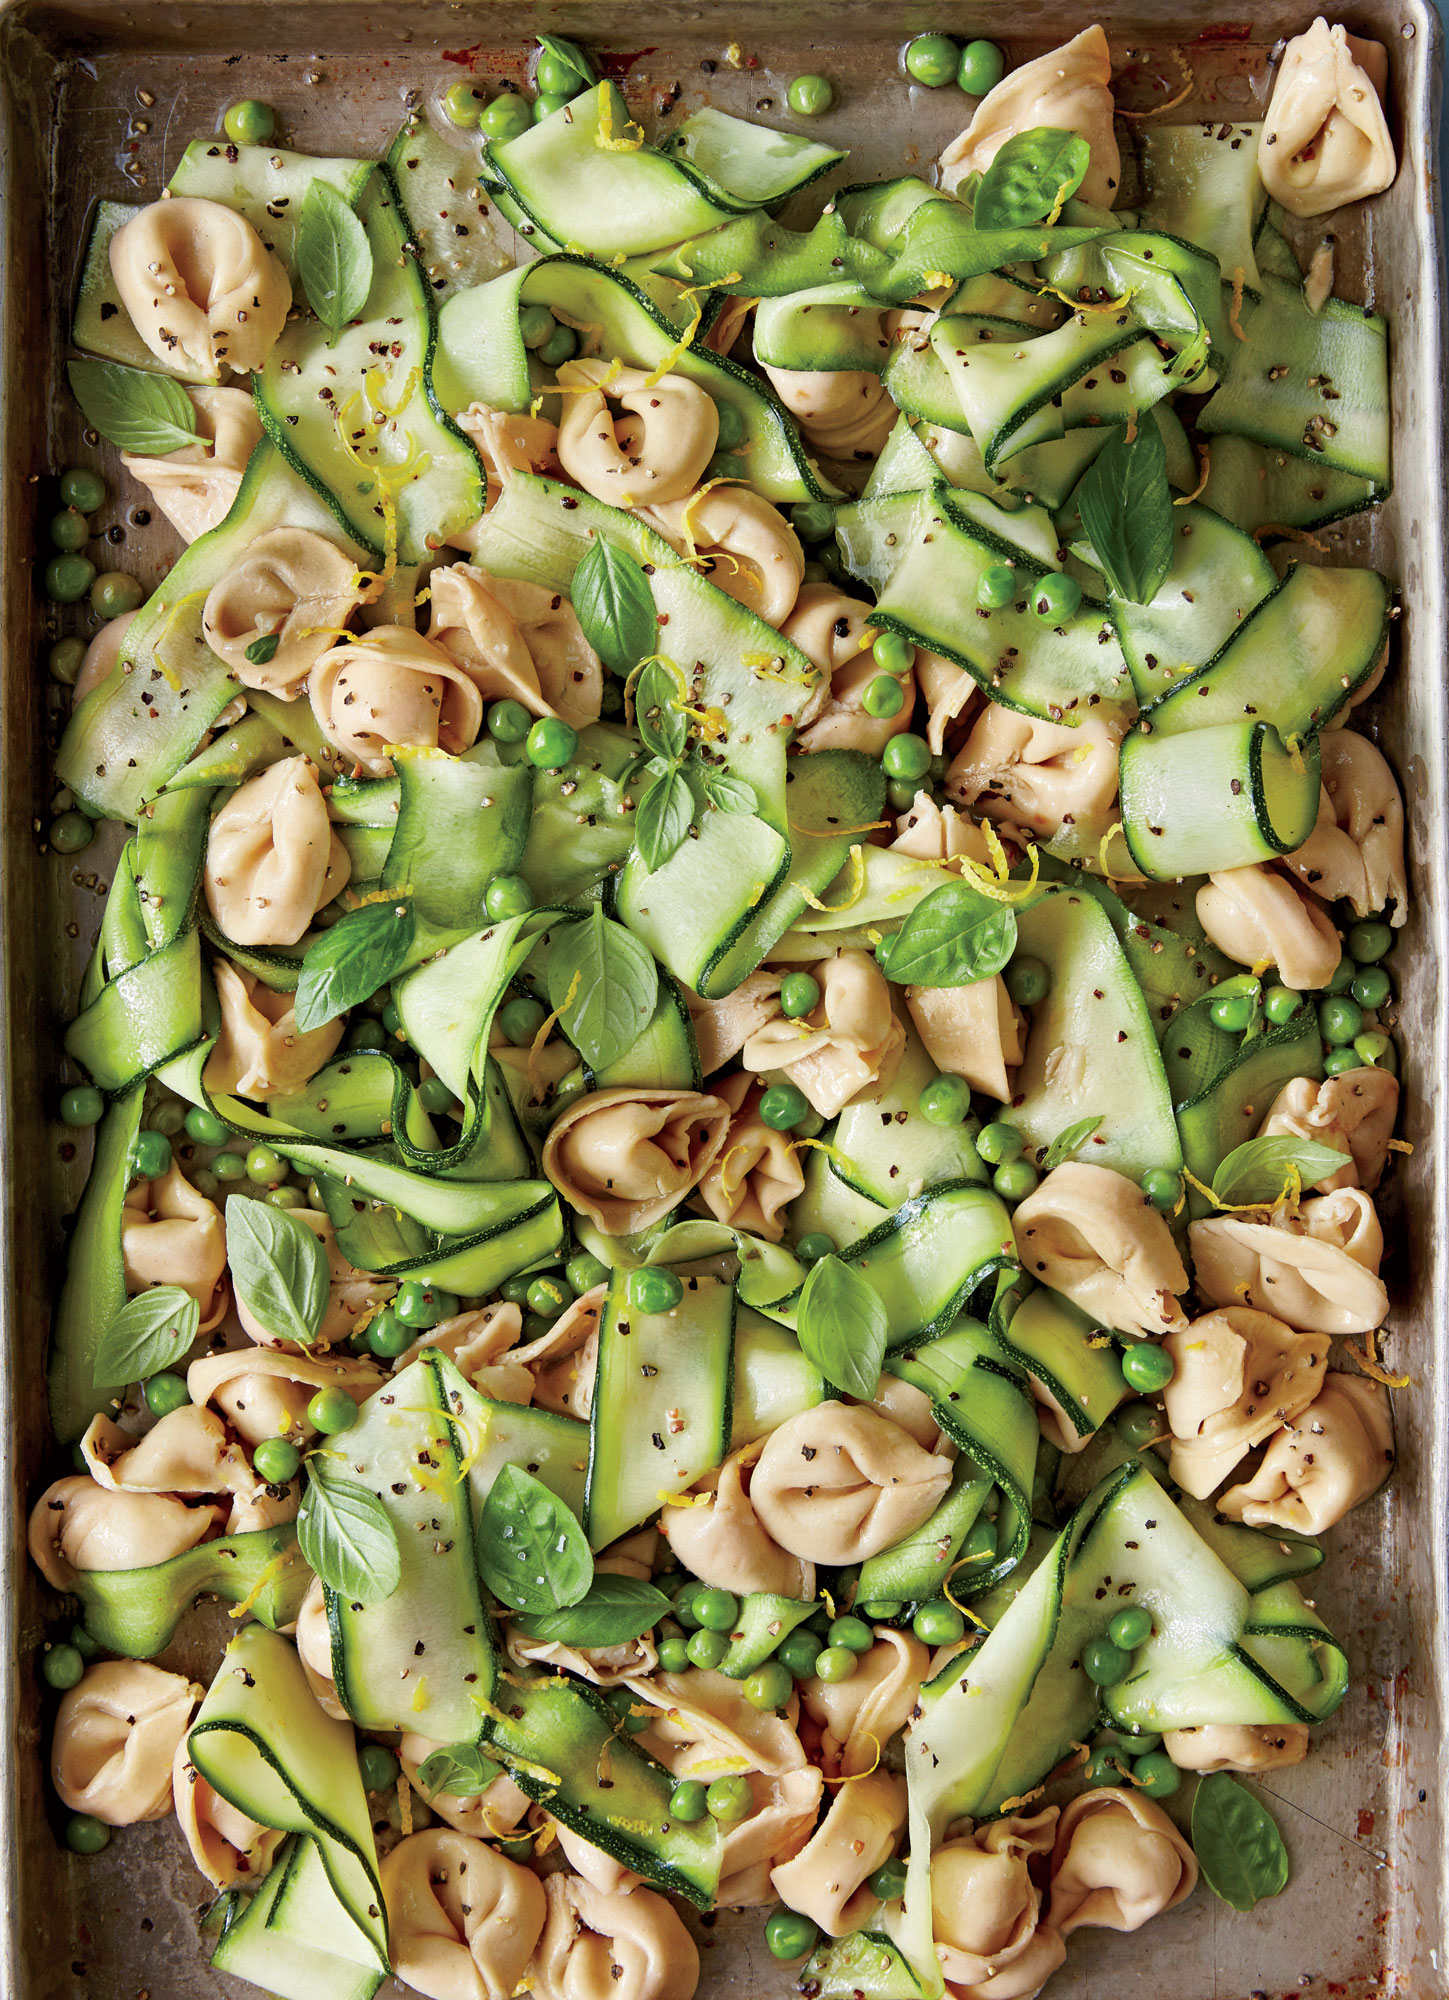 Tortellini Salad with Zucchini and Peas